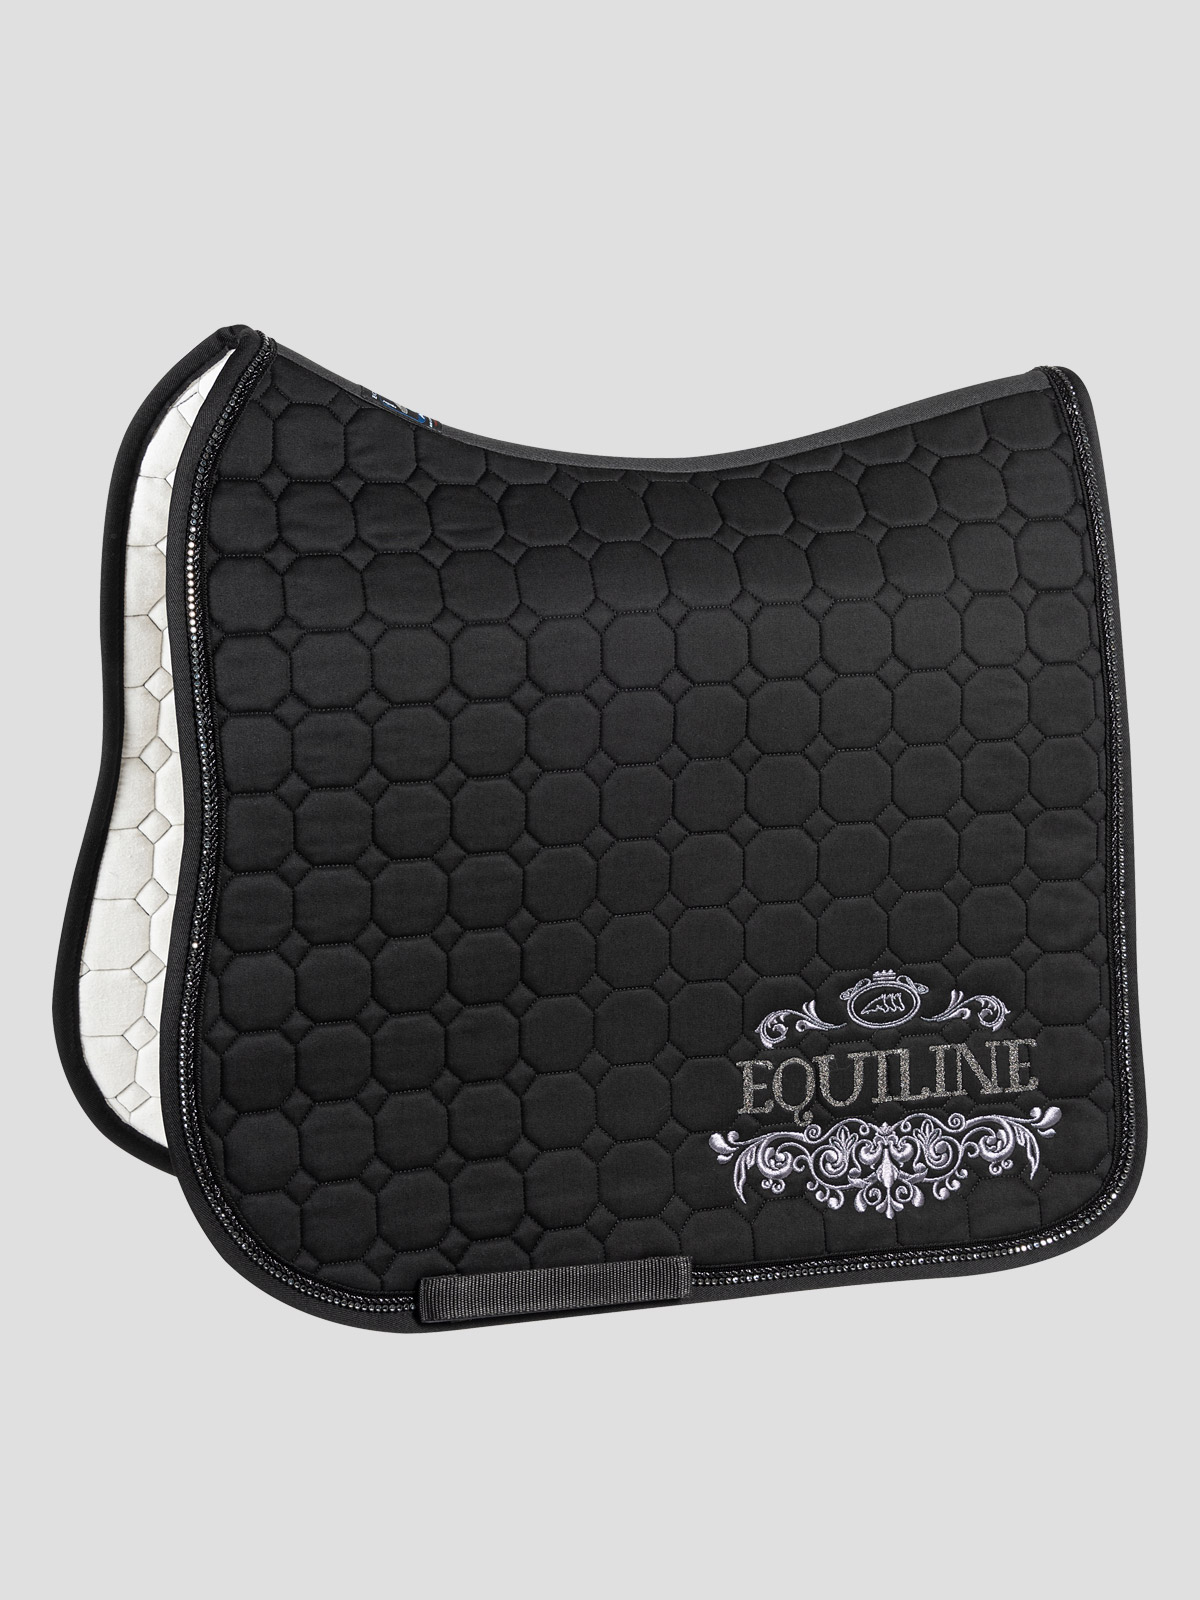 GALEN OCTAGON SADDLEPAD 4